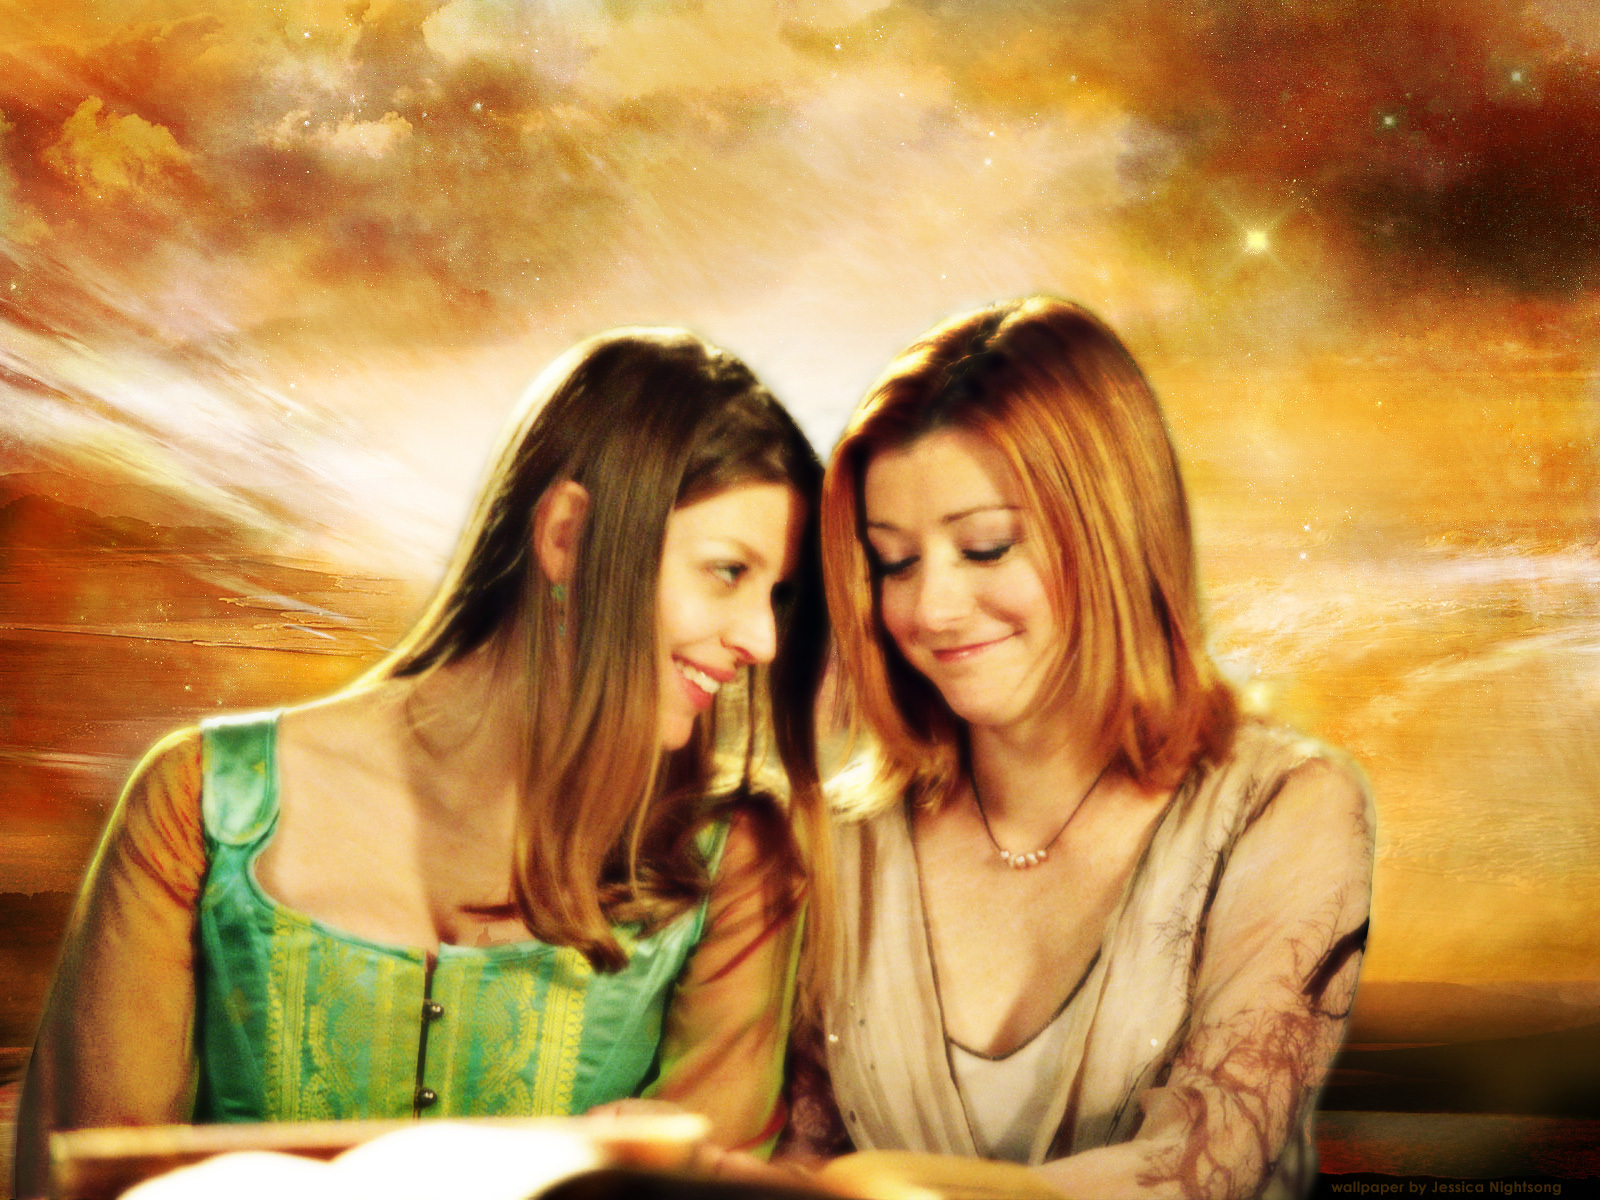 http://images2.fanpop.com/image/photos/8700000/Buffy-the-vampire-slayer-vampires-8767007-1600-1200.jpg